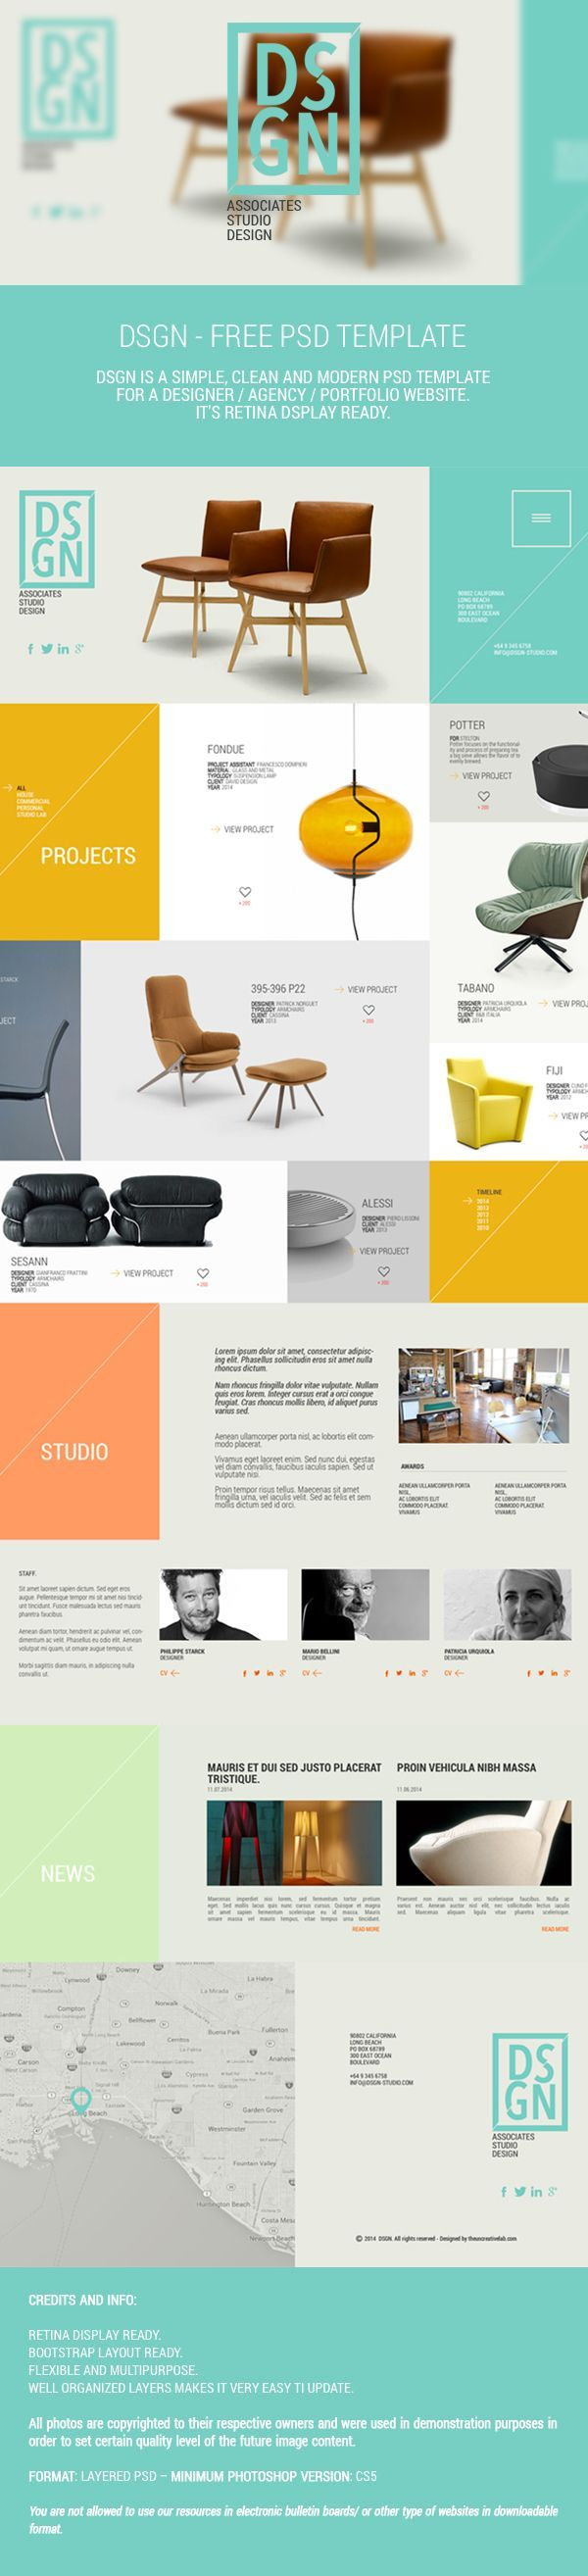 366 best web templates images on pinterest website designs design dsgn is a simple clean and modern psd template for designer agency portfolio websites its retina ready free psd released by michele cialone toneelgroepblik Image collections